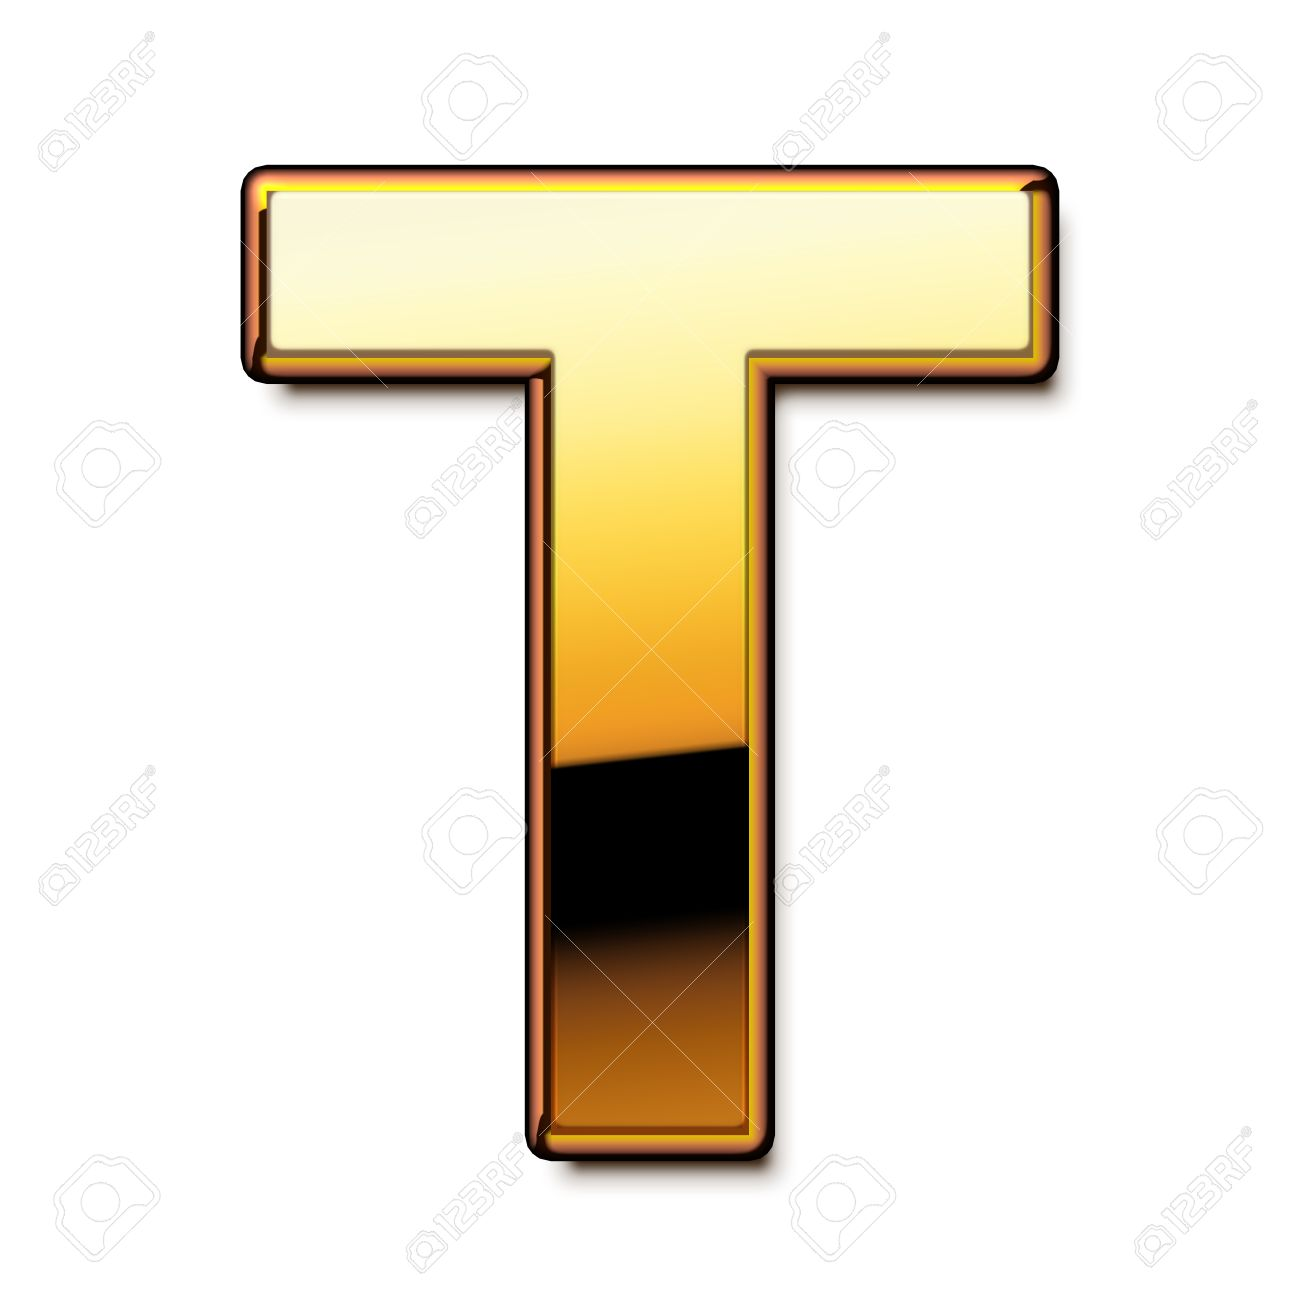 Gold Letter T Isolated Stock Photo, Picture And Royalty Free Image